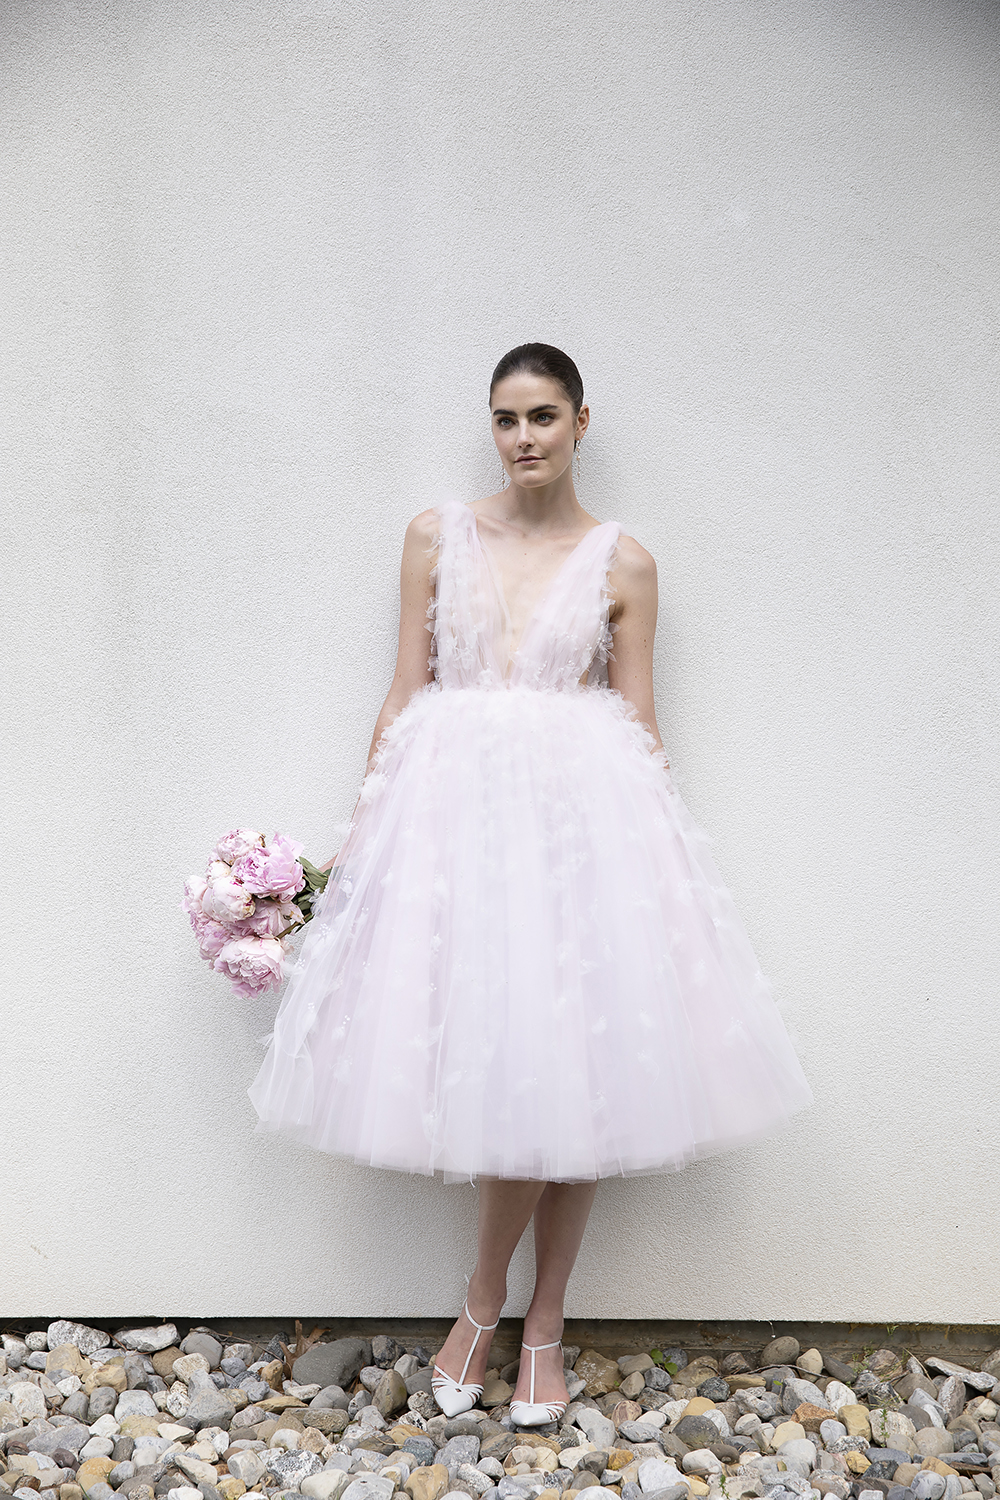 TULLE PINK LAYERED APPLIQUE GOWN BY CHRISTIAN SIRIANO